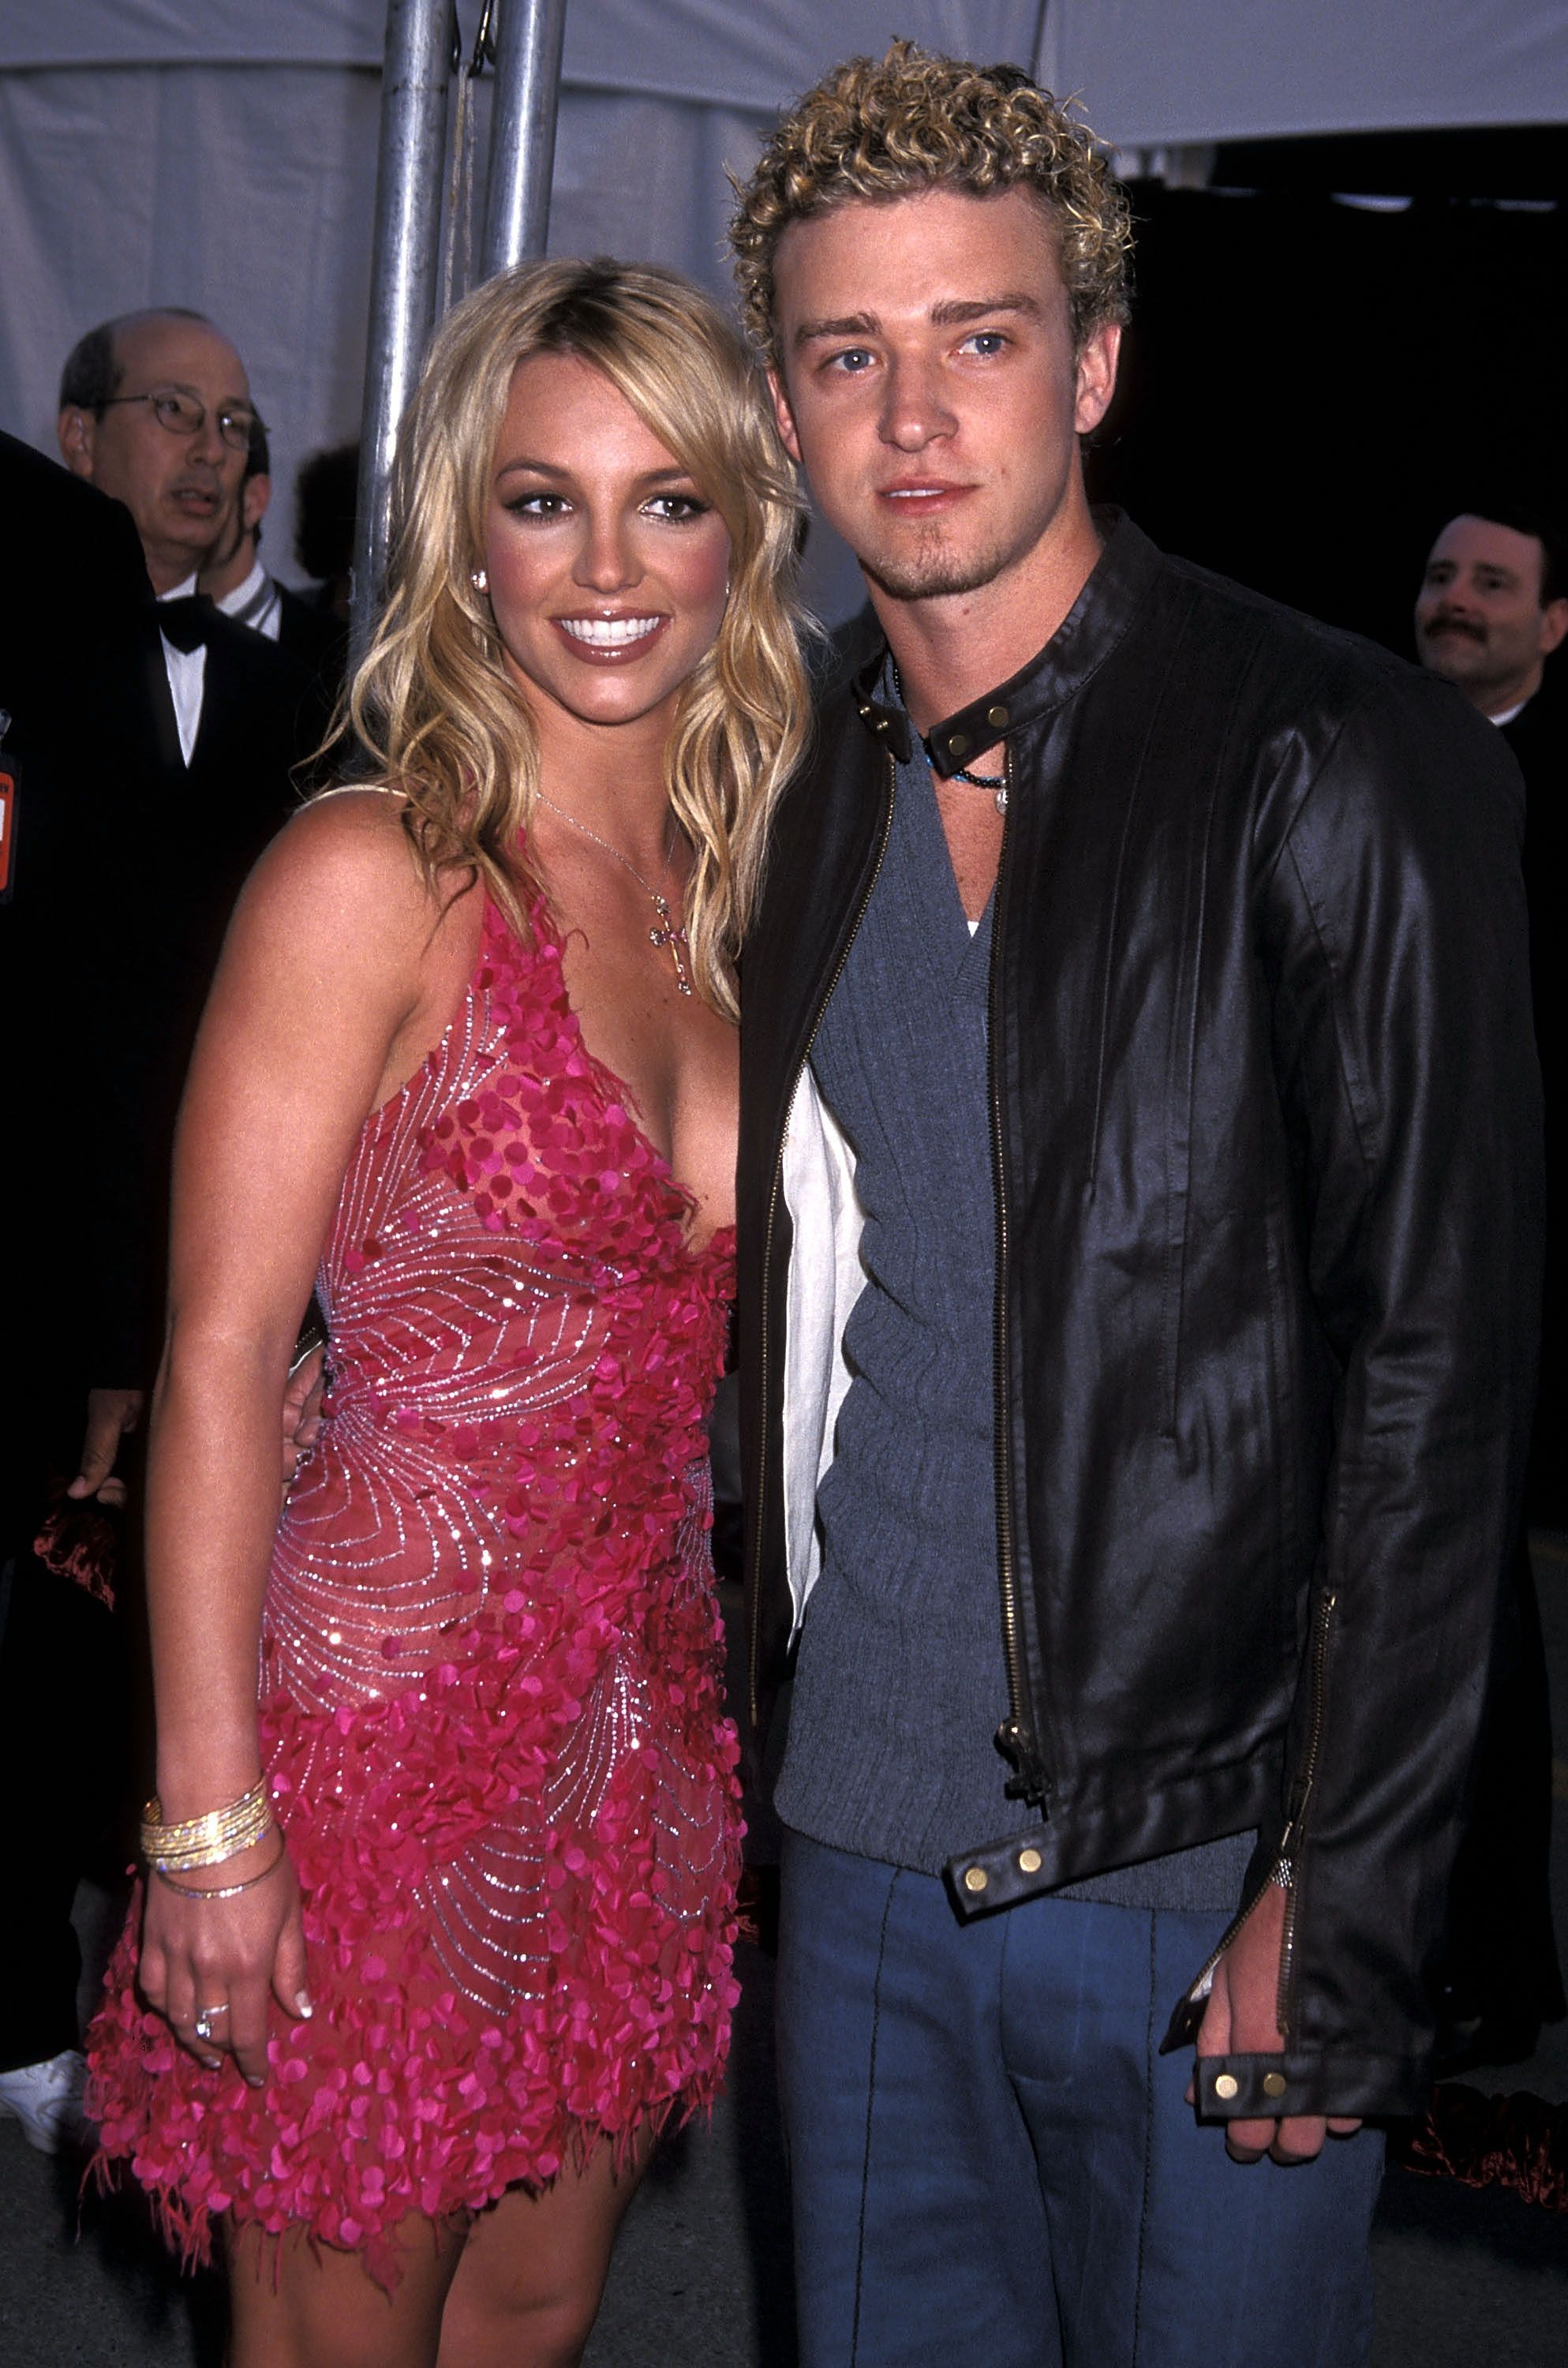 Britney Spears and Justin Timberlake of N'Sync at the 29th Annual American Music Awards in 2002 in Los Angeles | Source: Getty Images